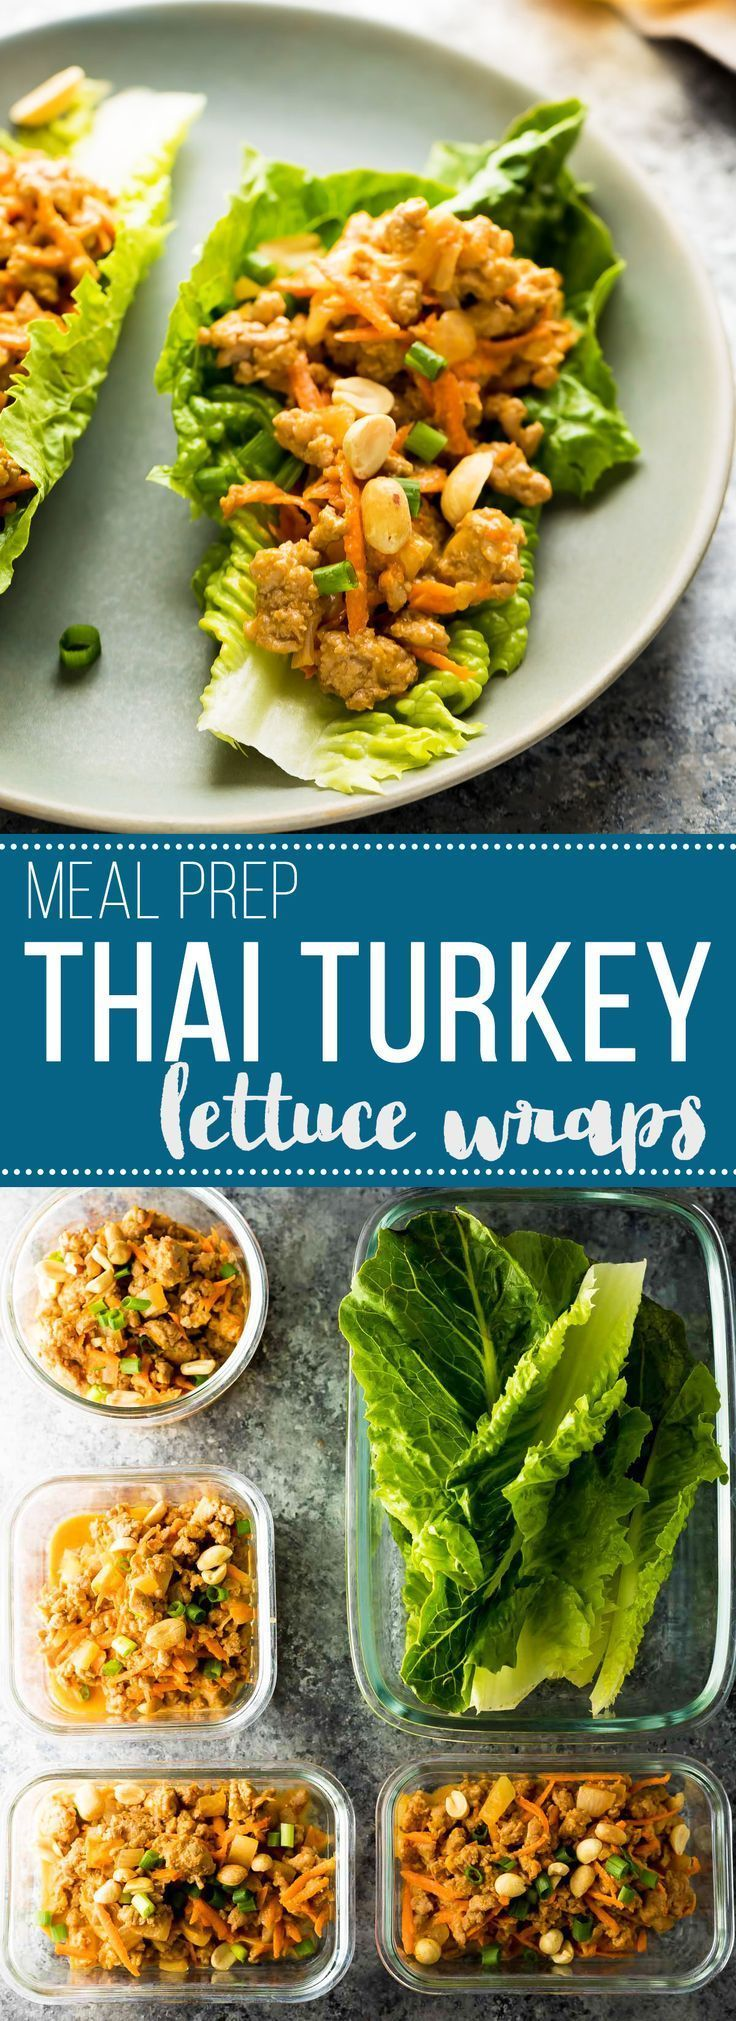 1301 best Delicious images on Pinterest   Cooking food, Hands and ...